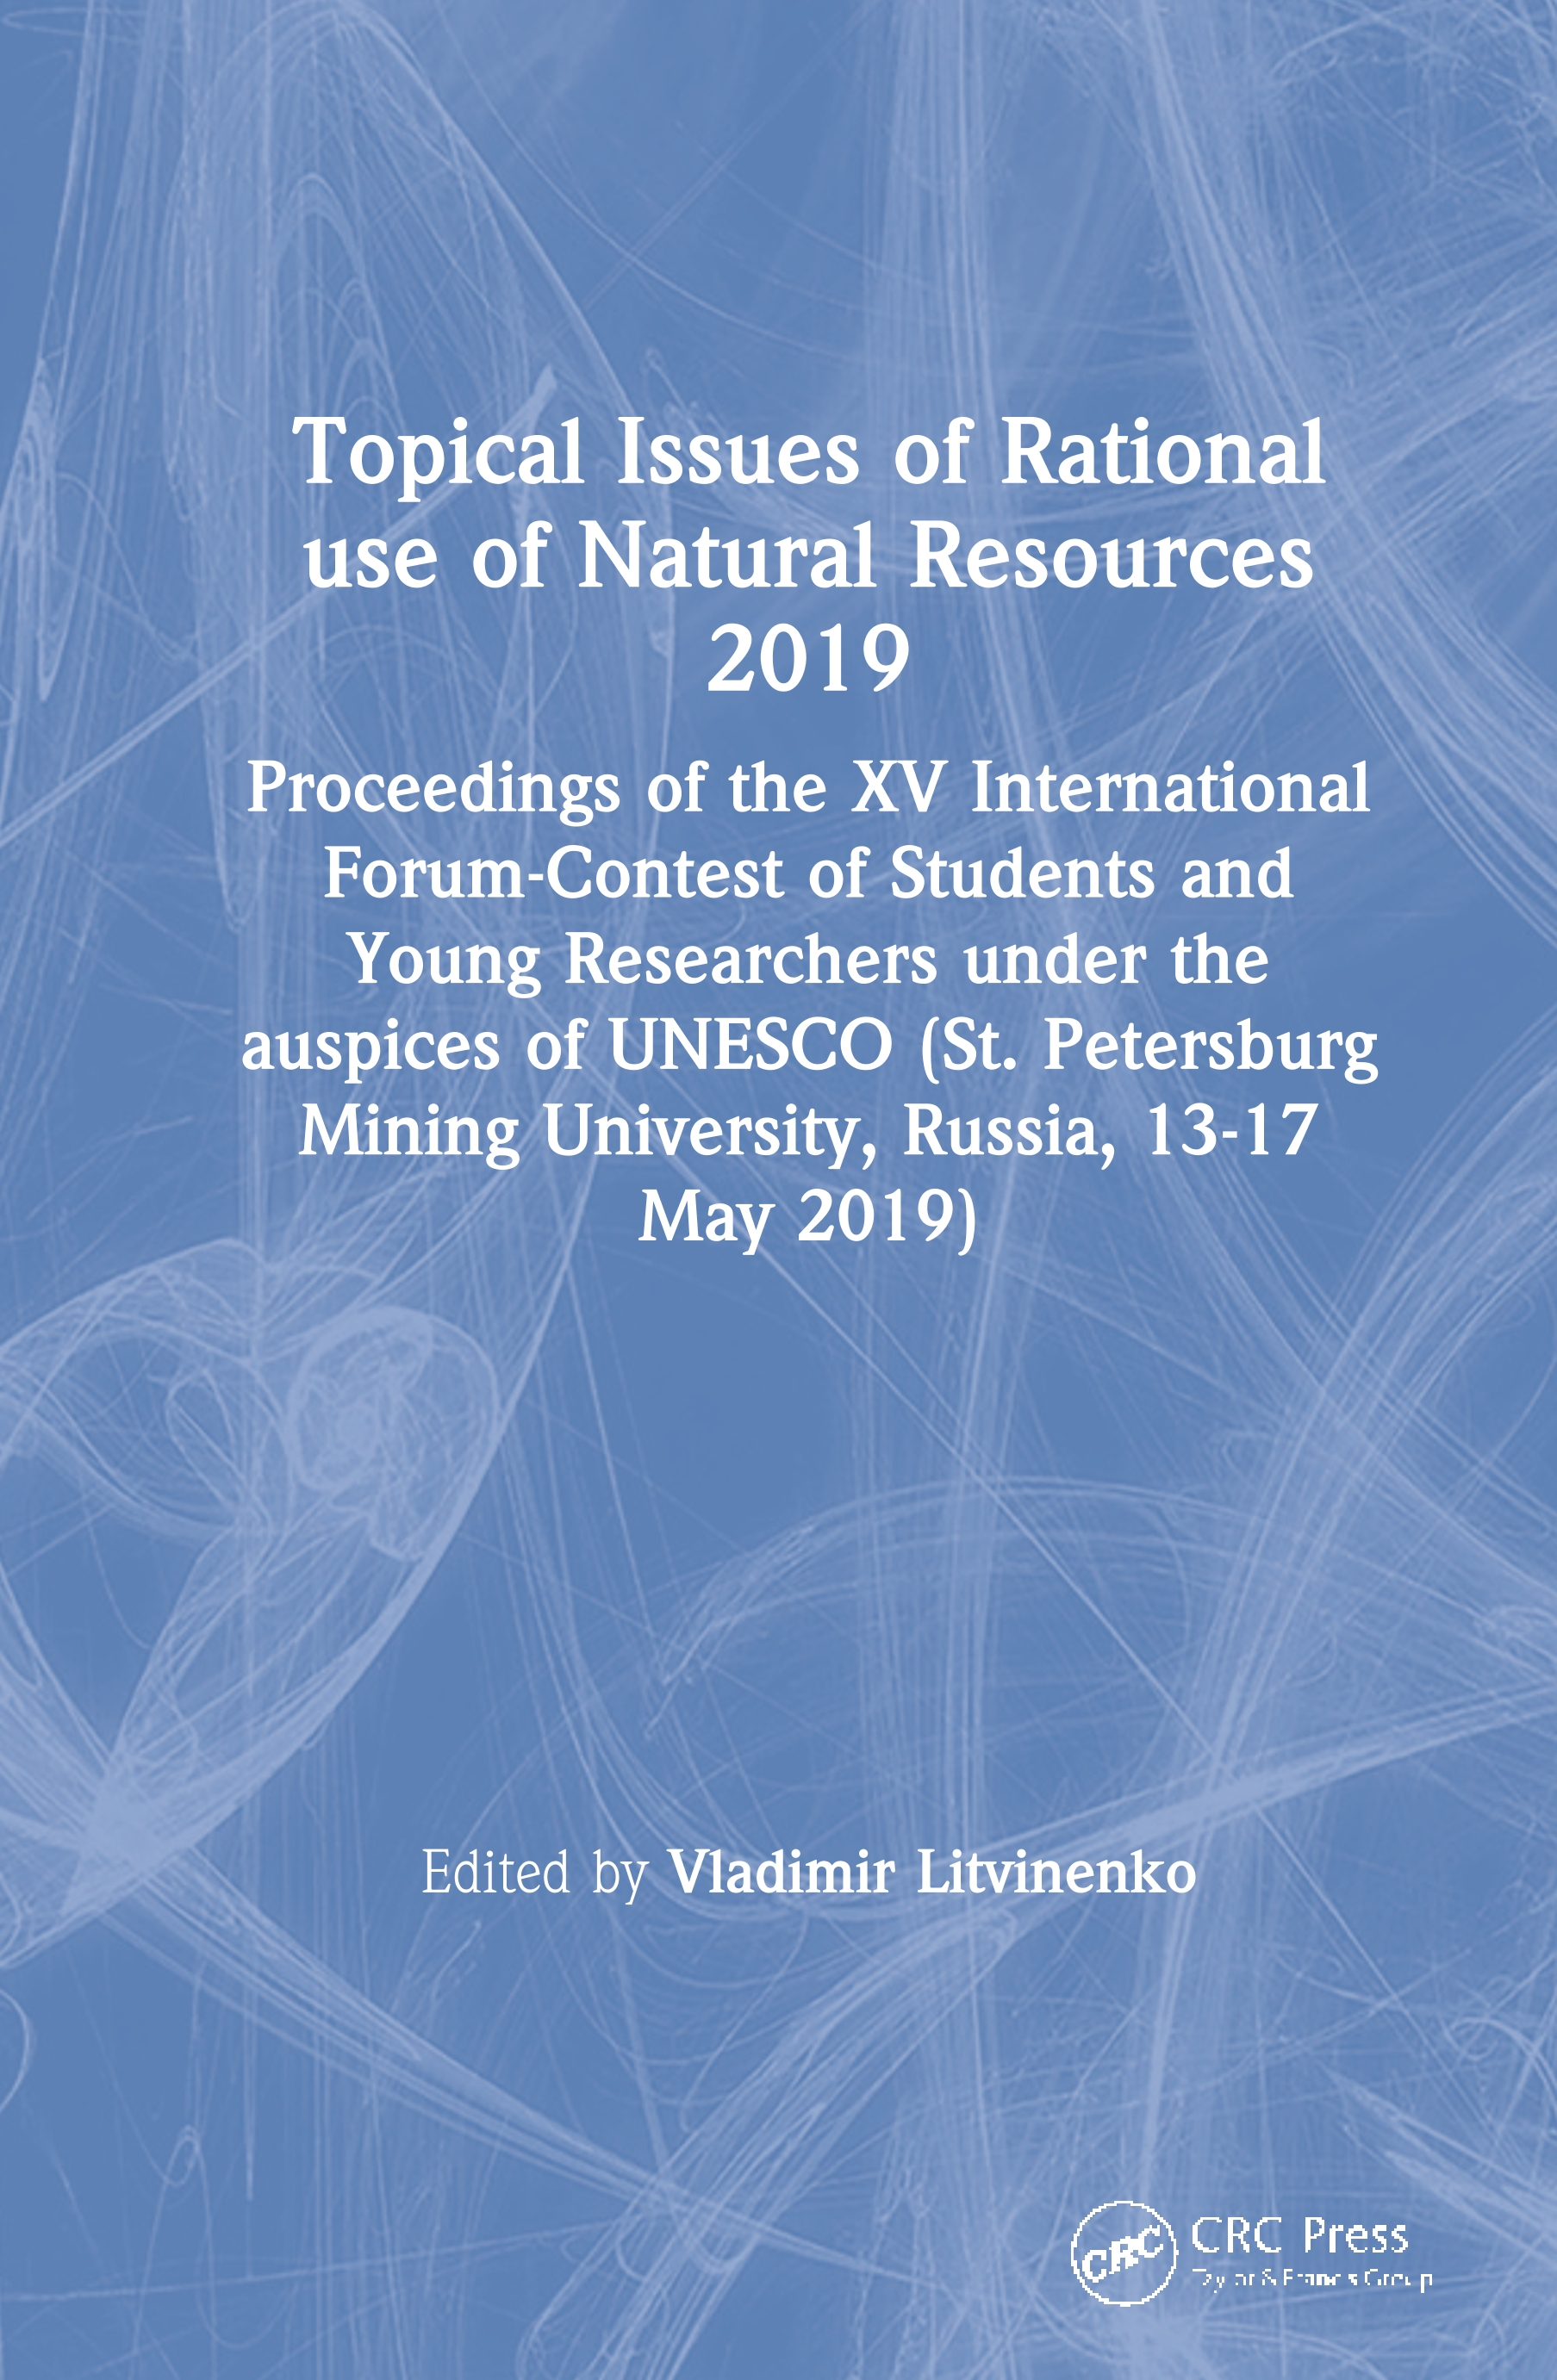 Topical Issues of Rational use of Natural Resources 2019: Proceedings of the XV International Forum-Contest of Students and Young Researchers under the auspices of UNESCO (St. Petersburg Mining University, Russia, 13-17 May 2019), 1st Edition (Hardback) book cover